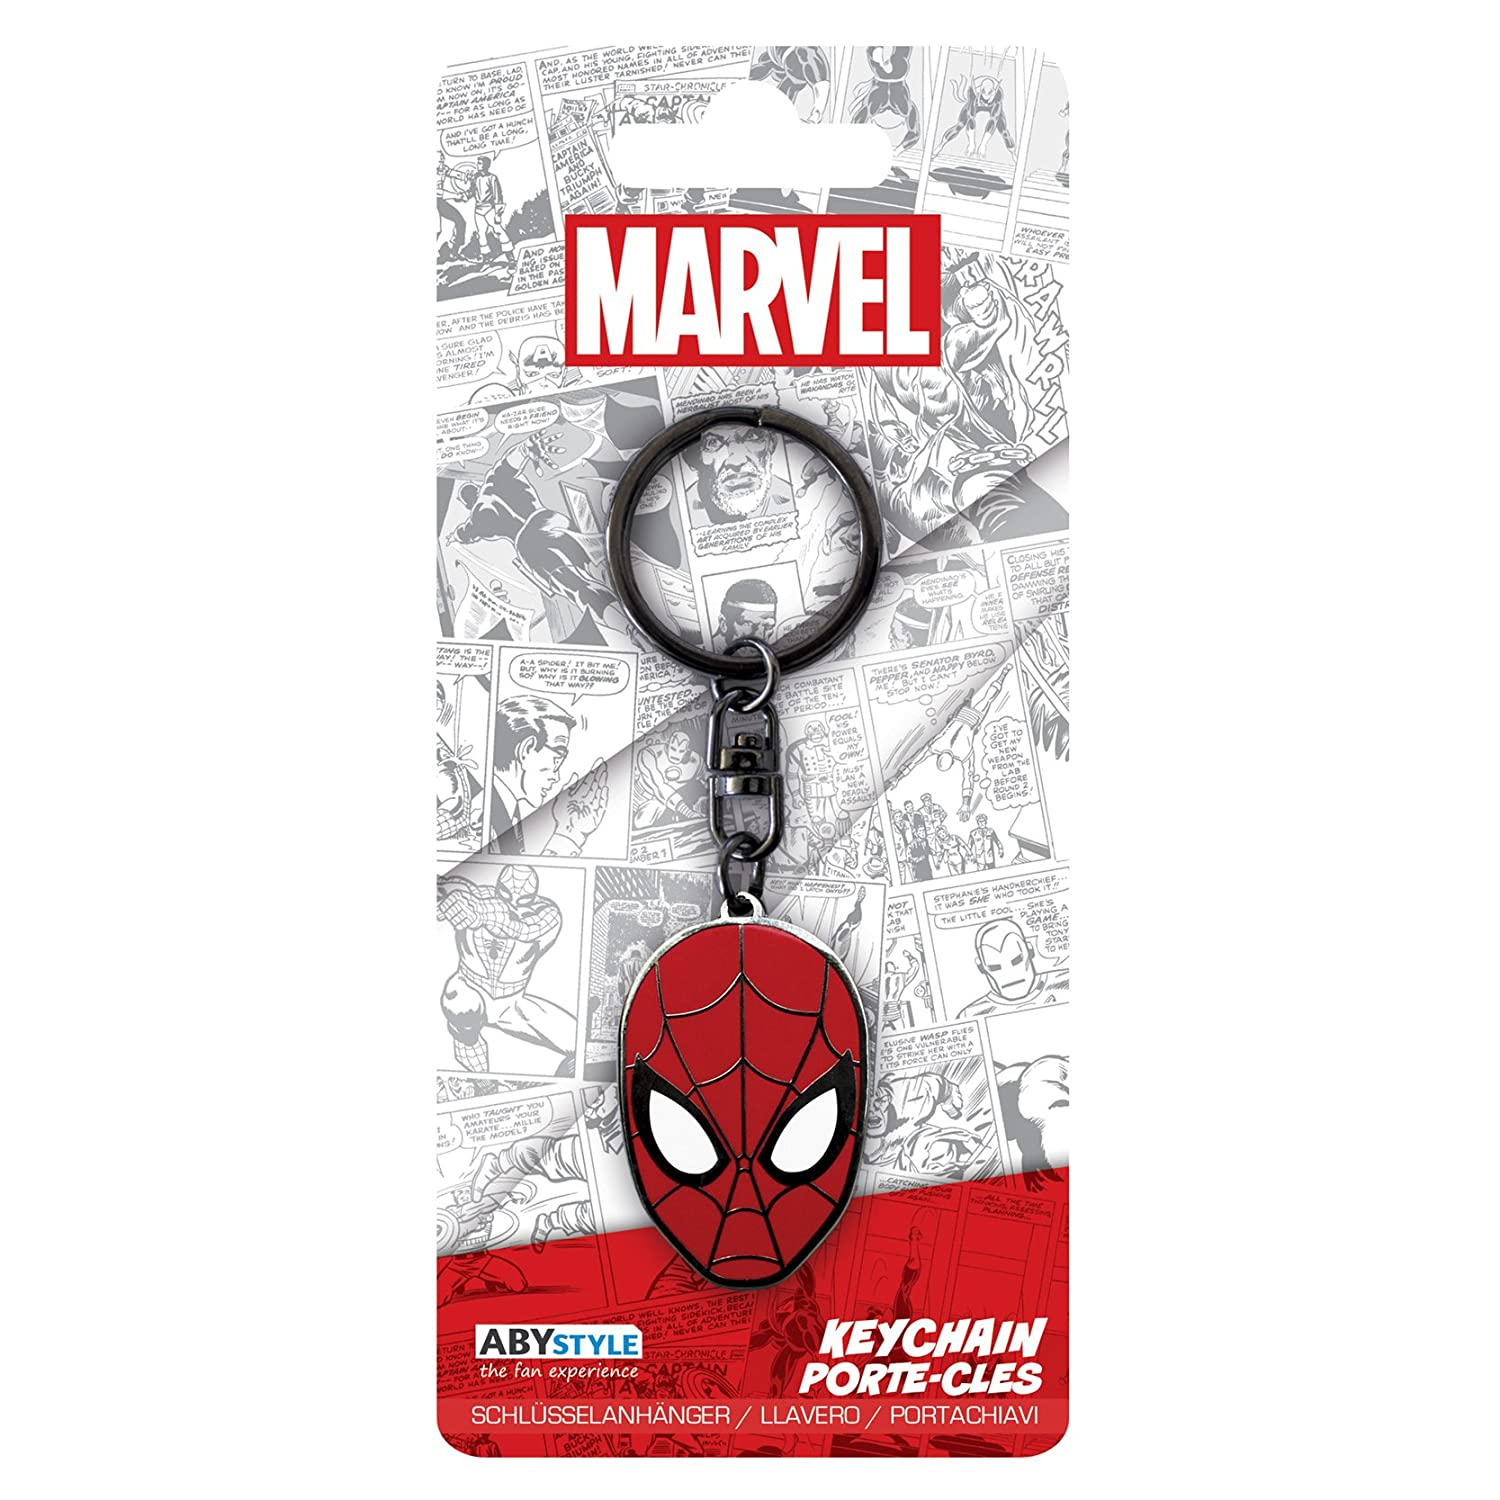 Amazon.com: AbyStyle Abysse Corp_ABYKEY166 Marvel-Keychain ...